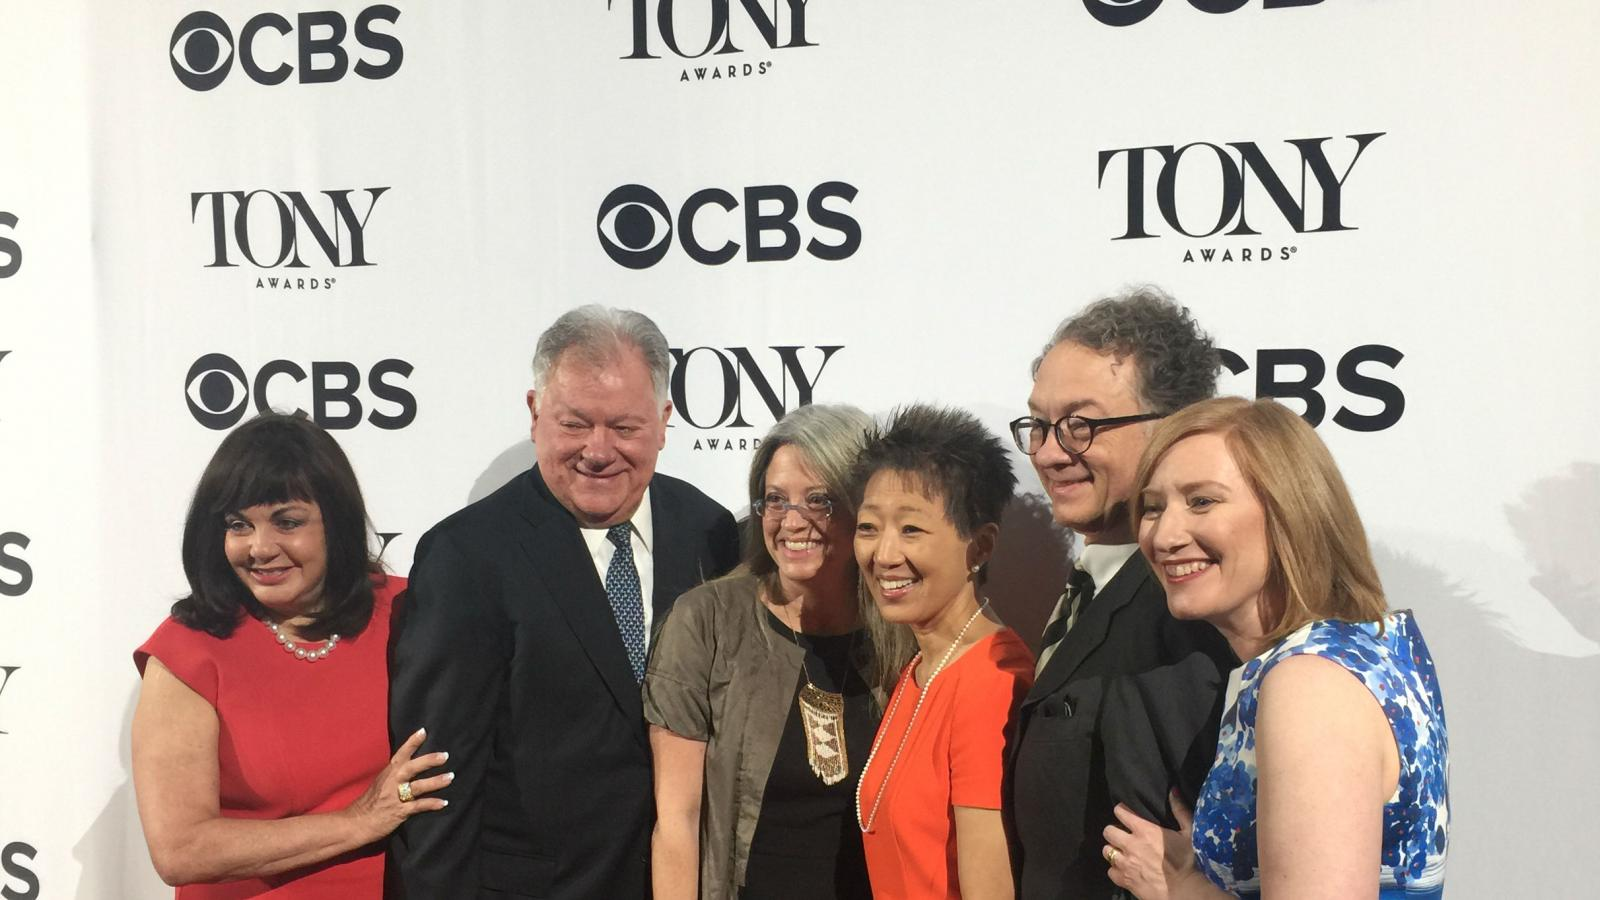 6 people in group in front of banner with Tony Awards and CBS logos